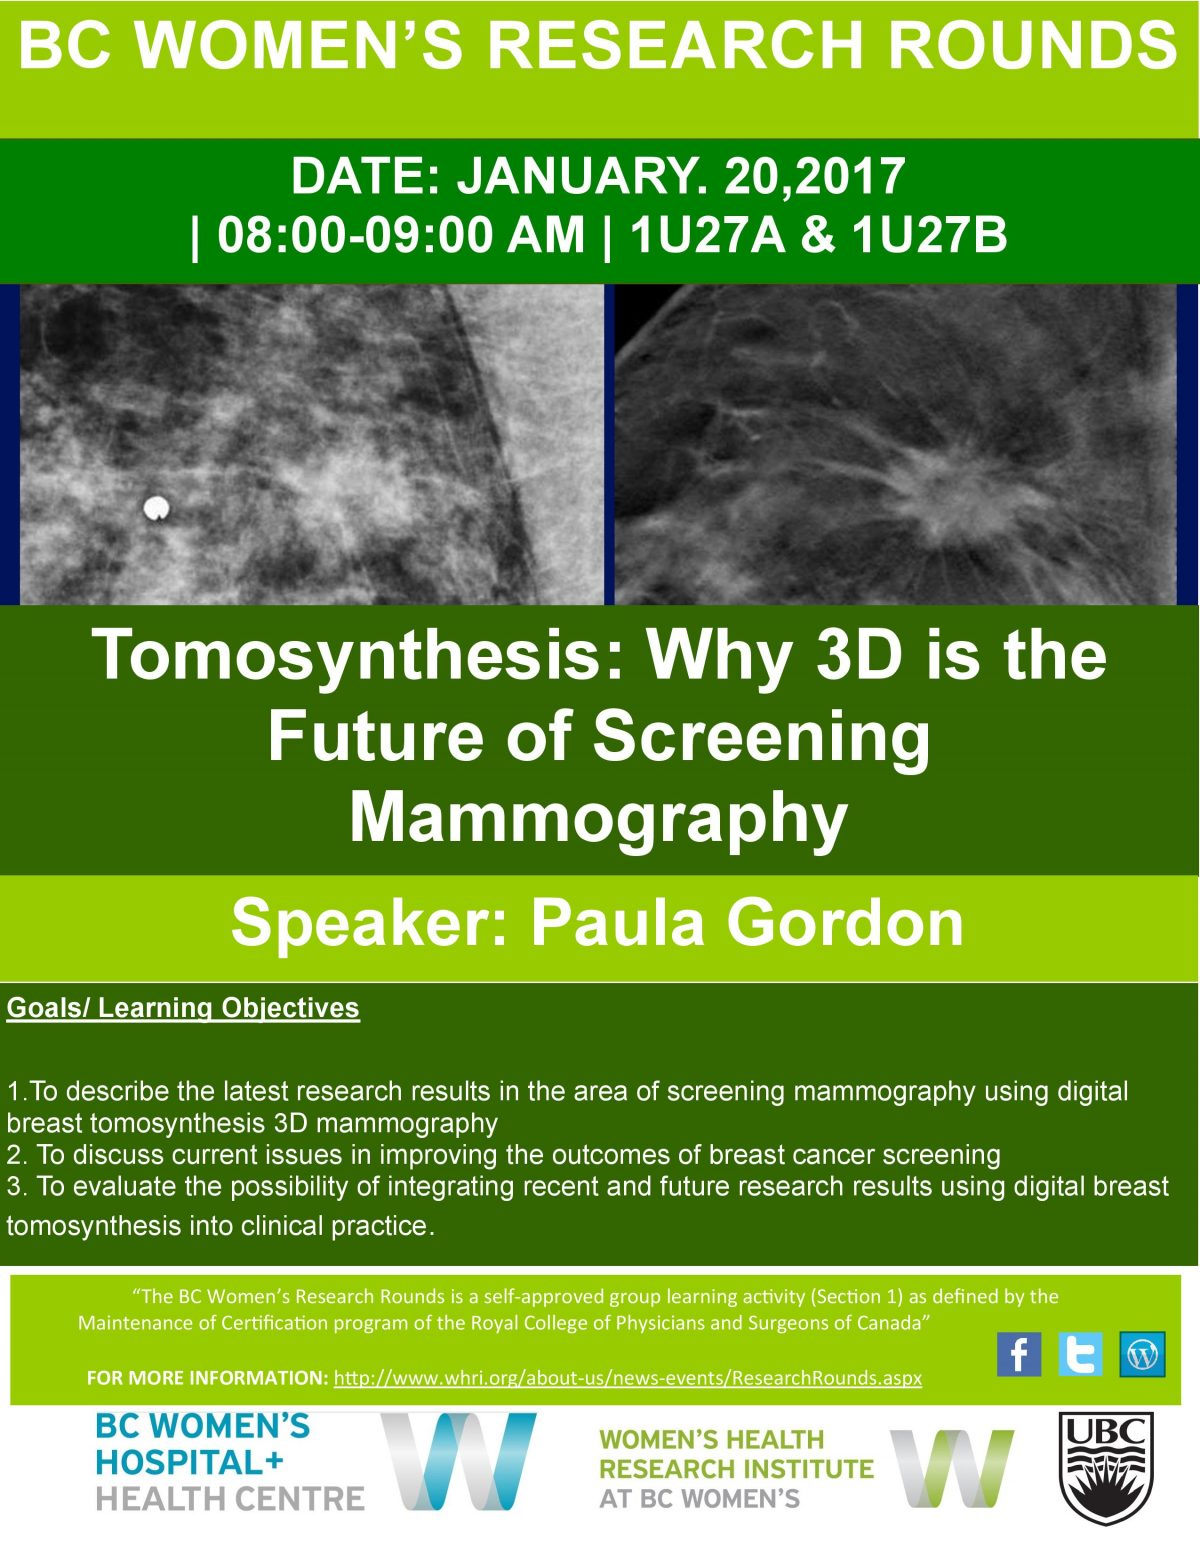 BC Women's Research Rounds: Tomosynthesis: Why 3D is the Future of Screening Mammography